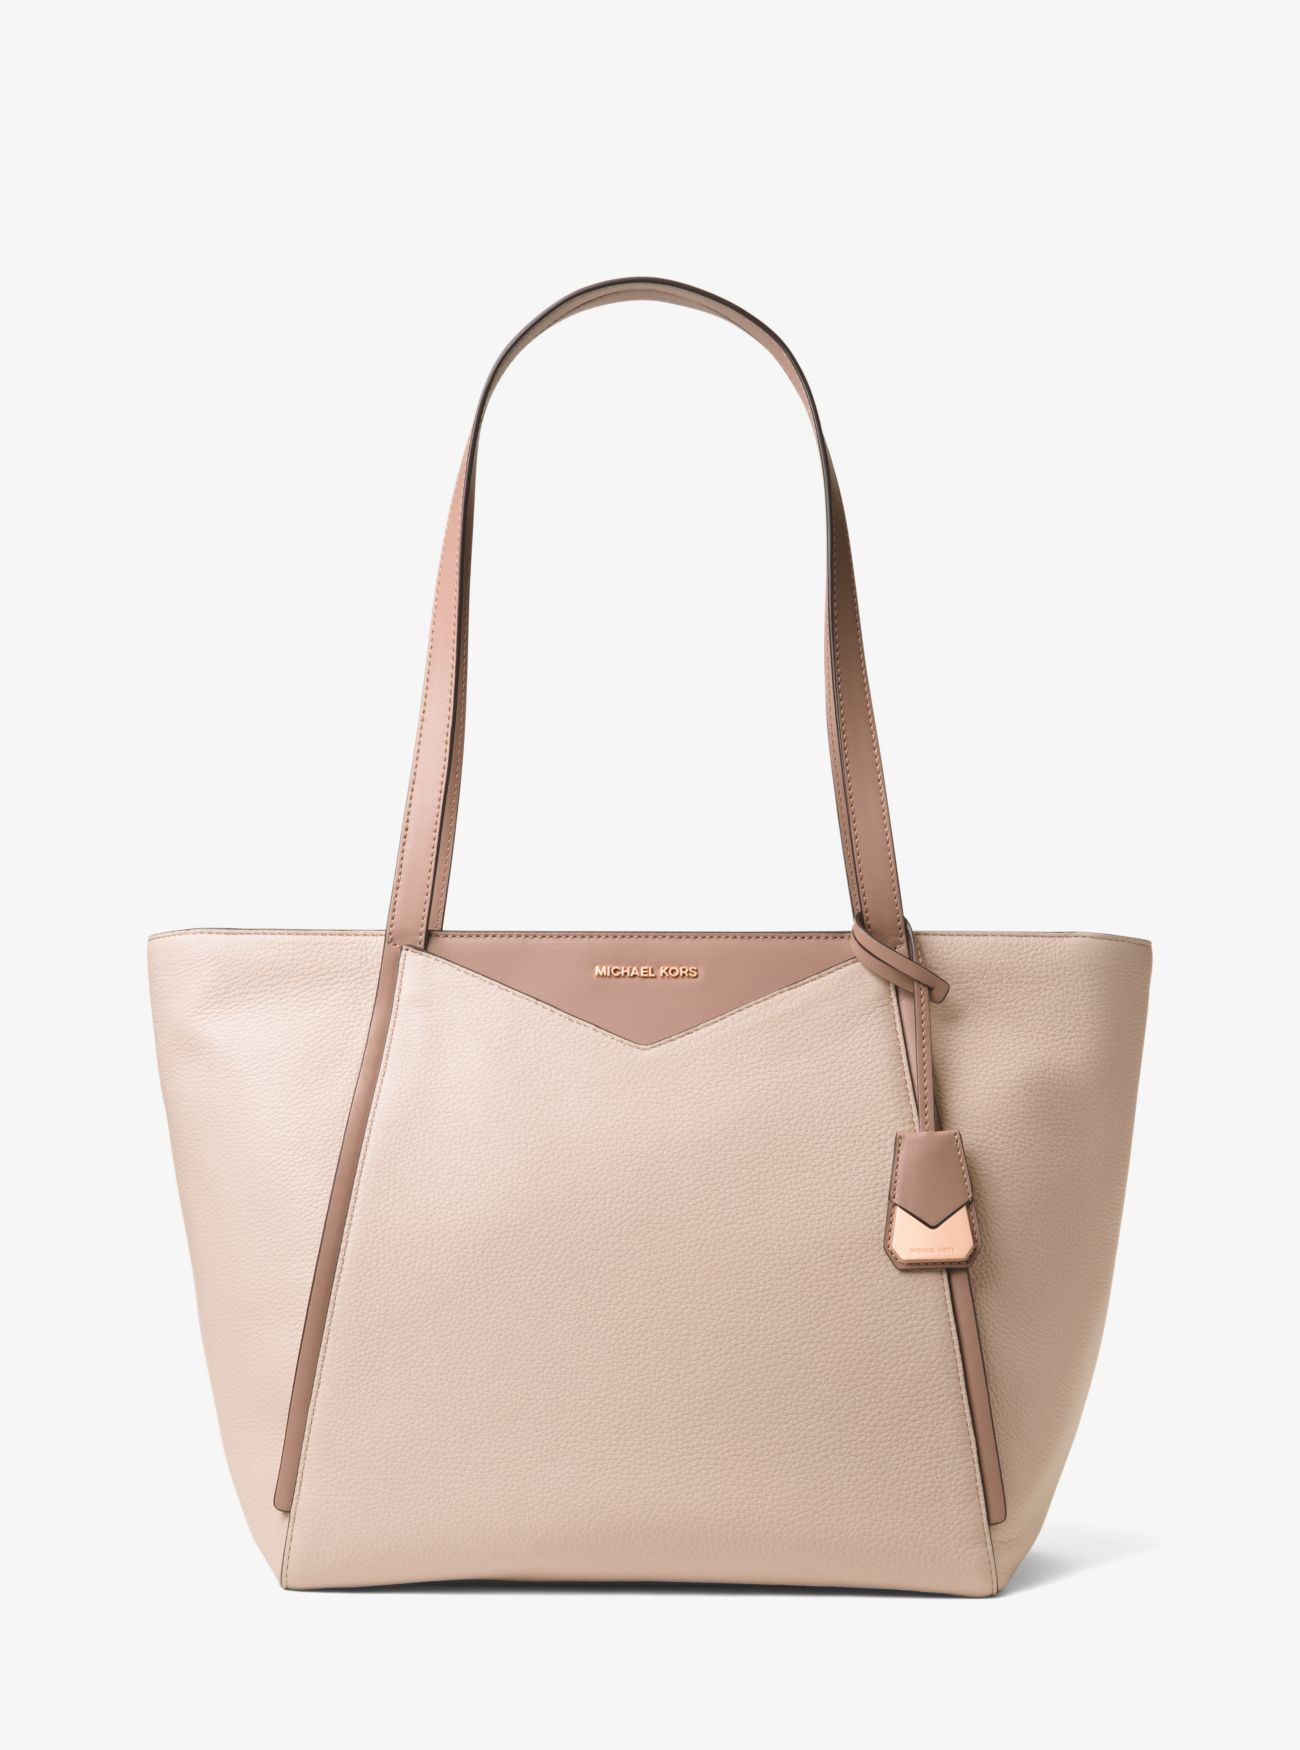 4cc430a86d3e81 ... bag germany whitney large leather tote whitney large leather tote  whitney large leather tote. michael michael cheapest michael kors ...